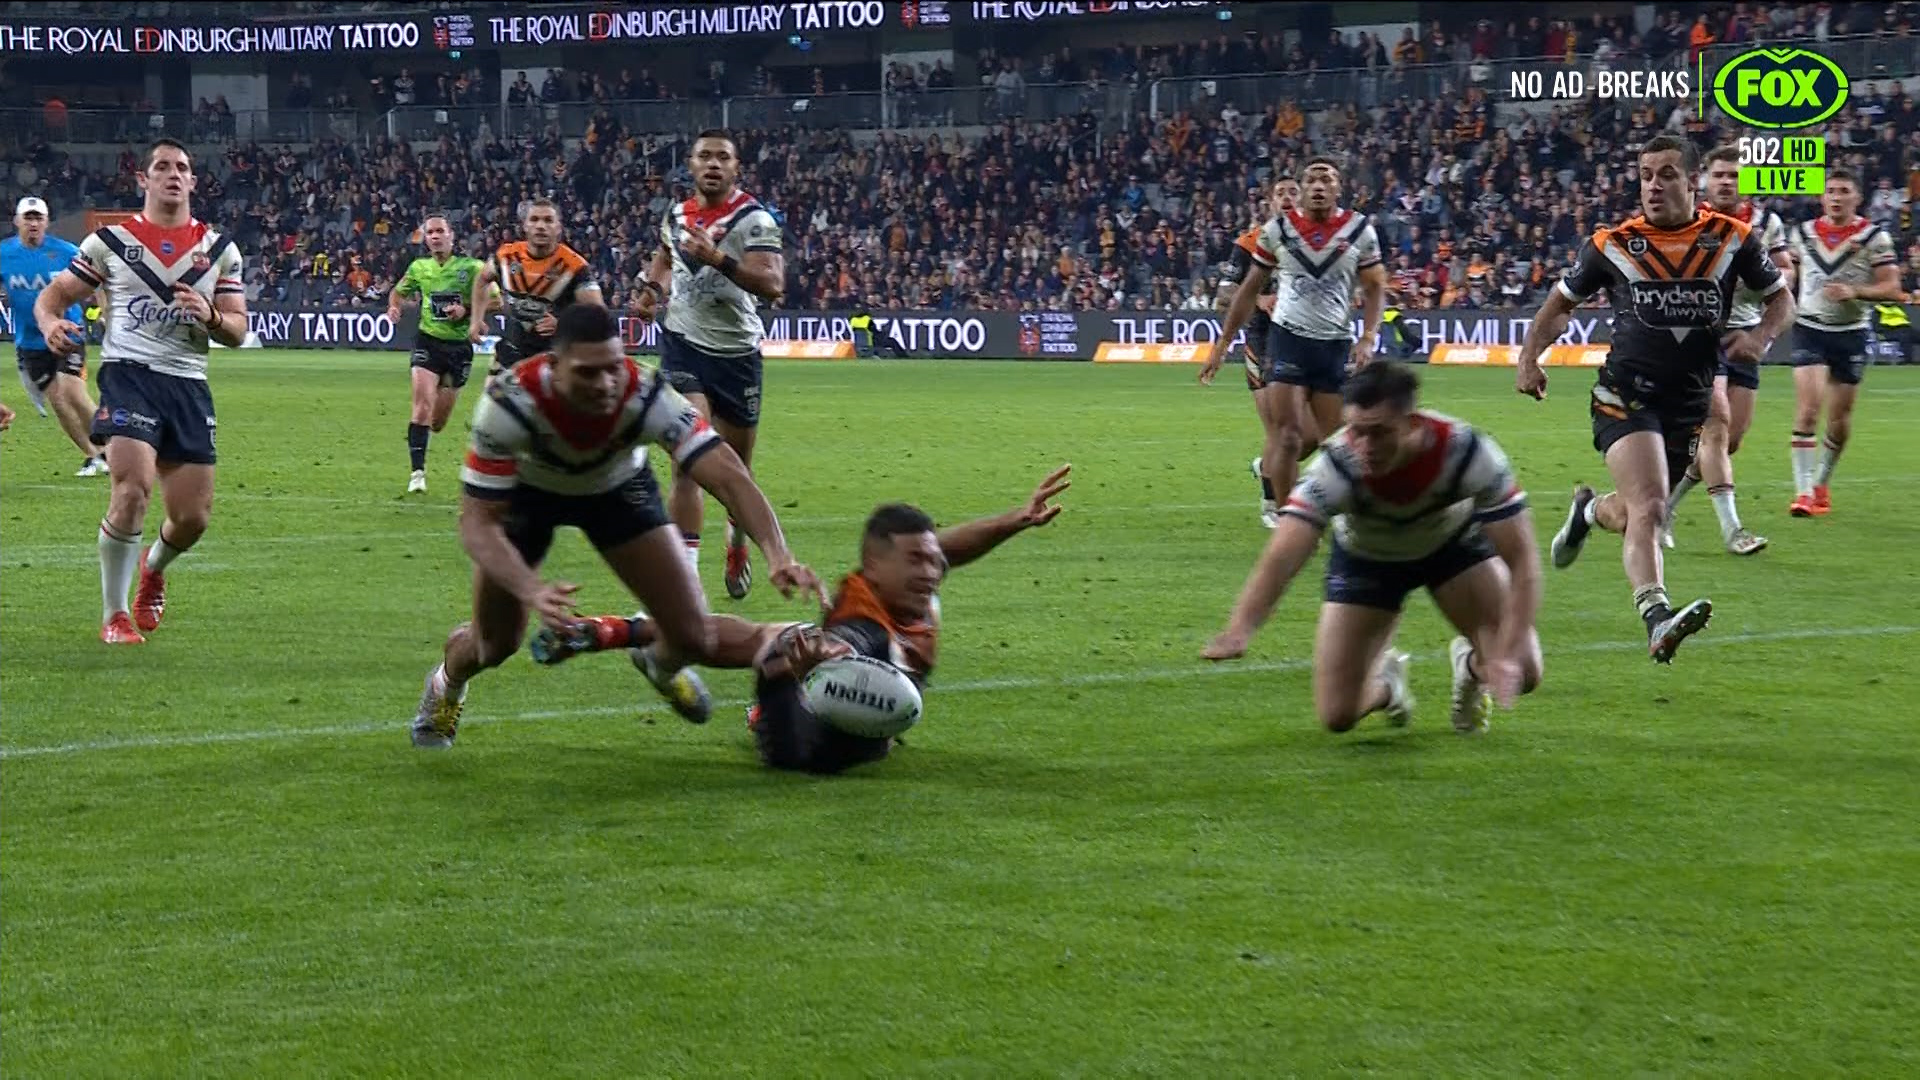 Tigers v Roosters: Esan Marsters awarded try after possible knock on